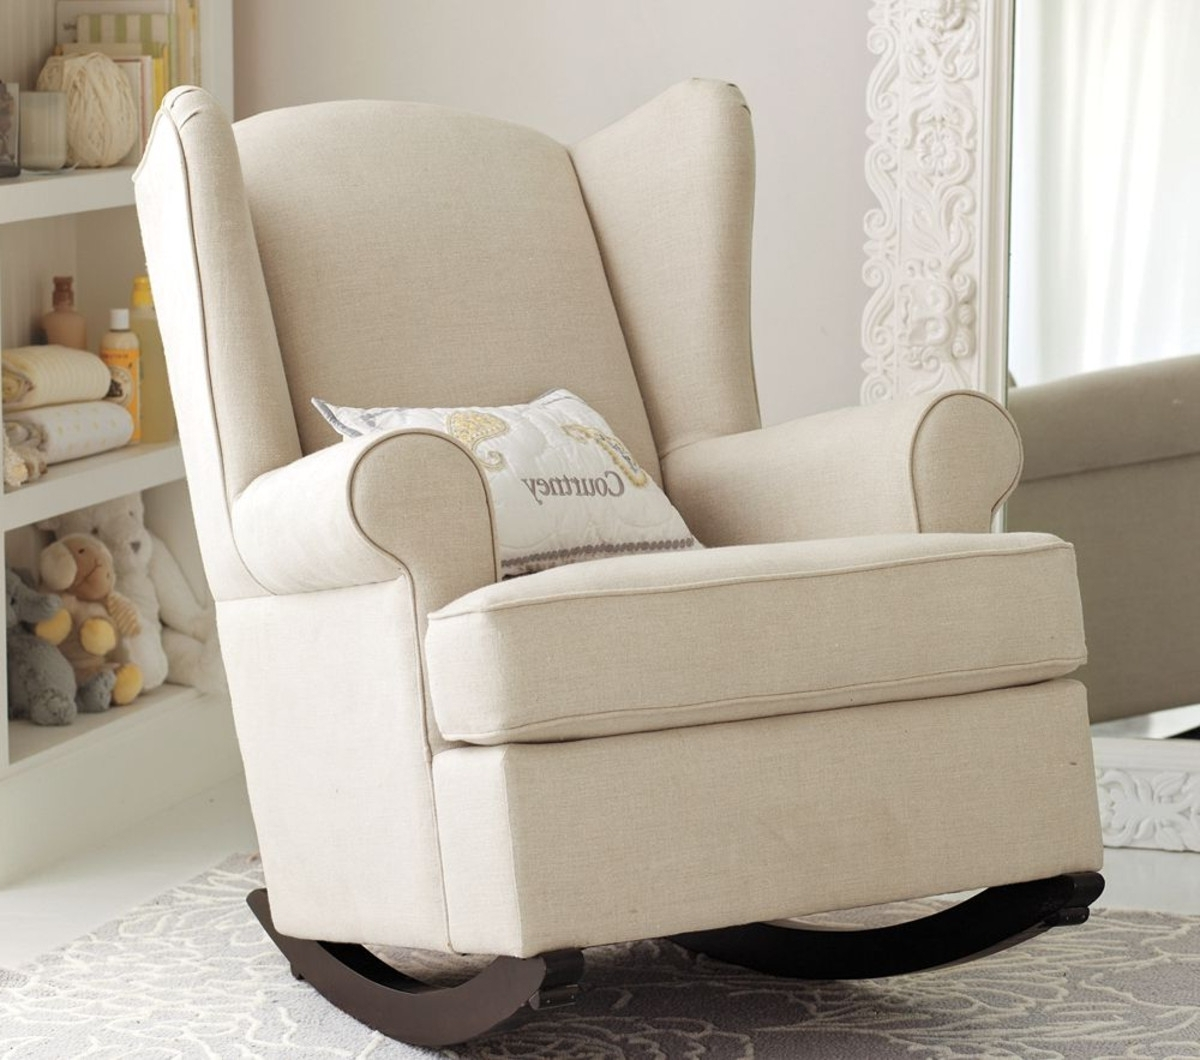 2017 Rocking Chair For Nursery Pregnancy F20x On Most Luxury Small Space Inside Rocking Chairs For Small Spaces (View 4 of 15)